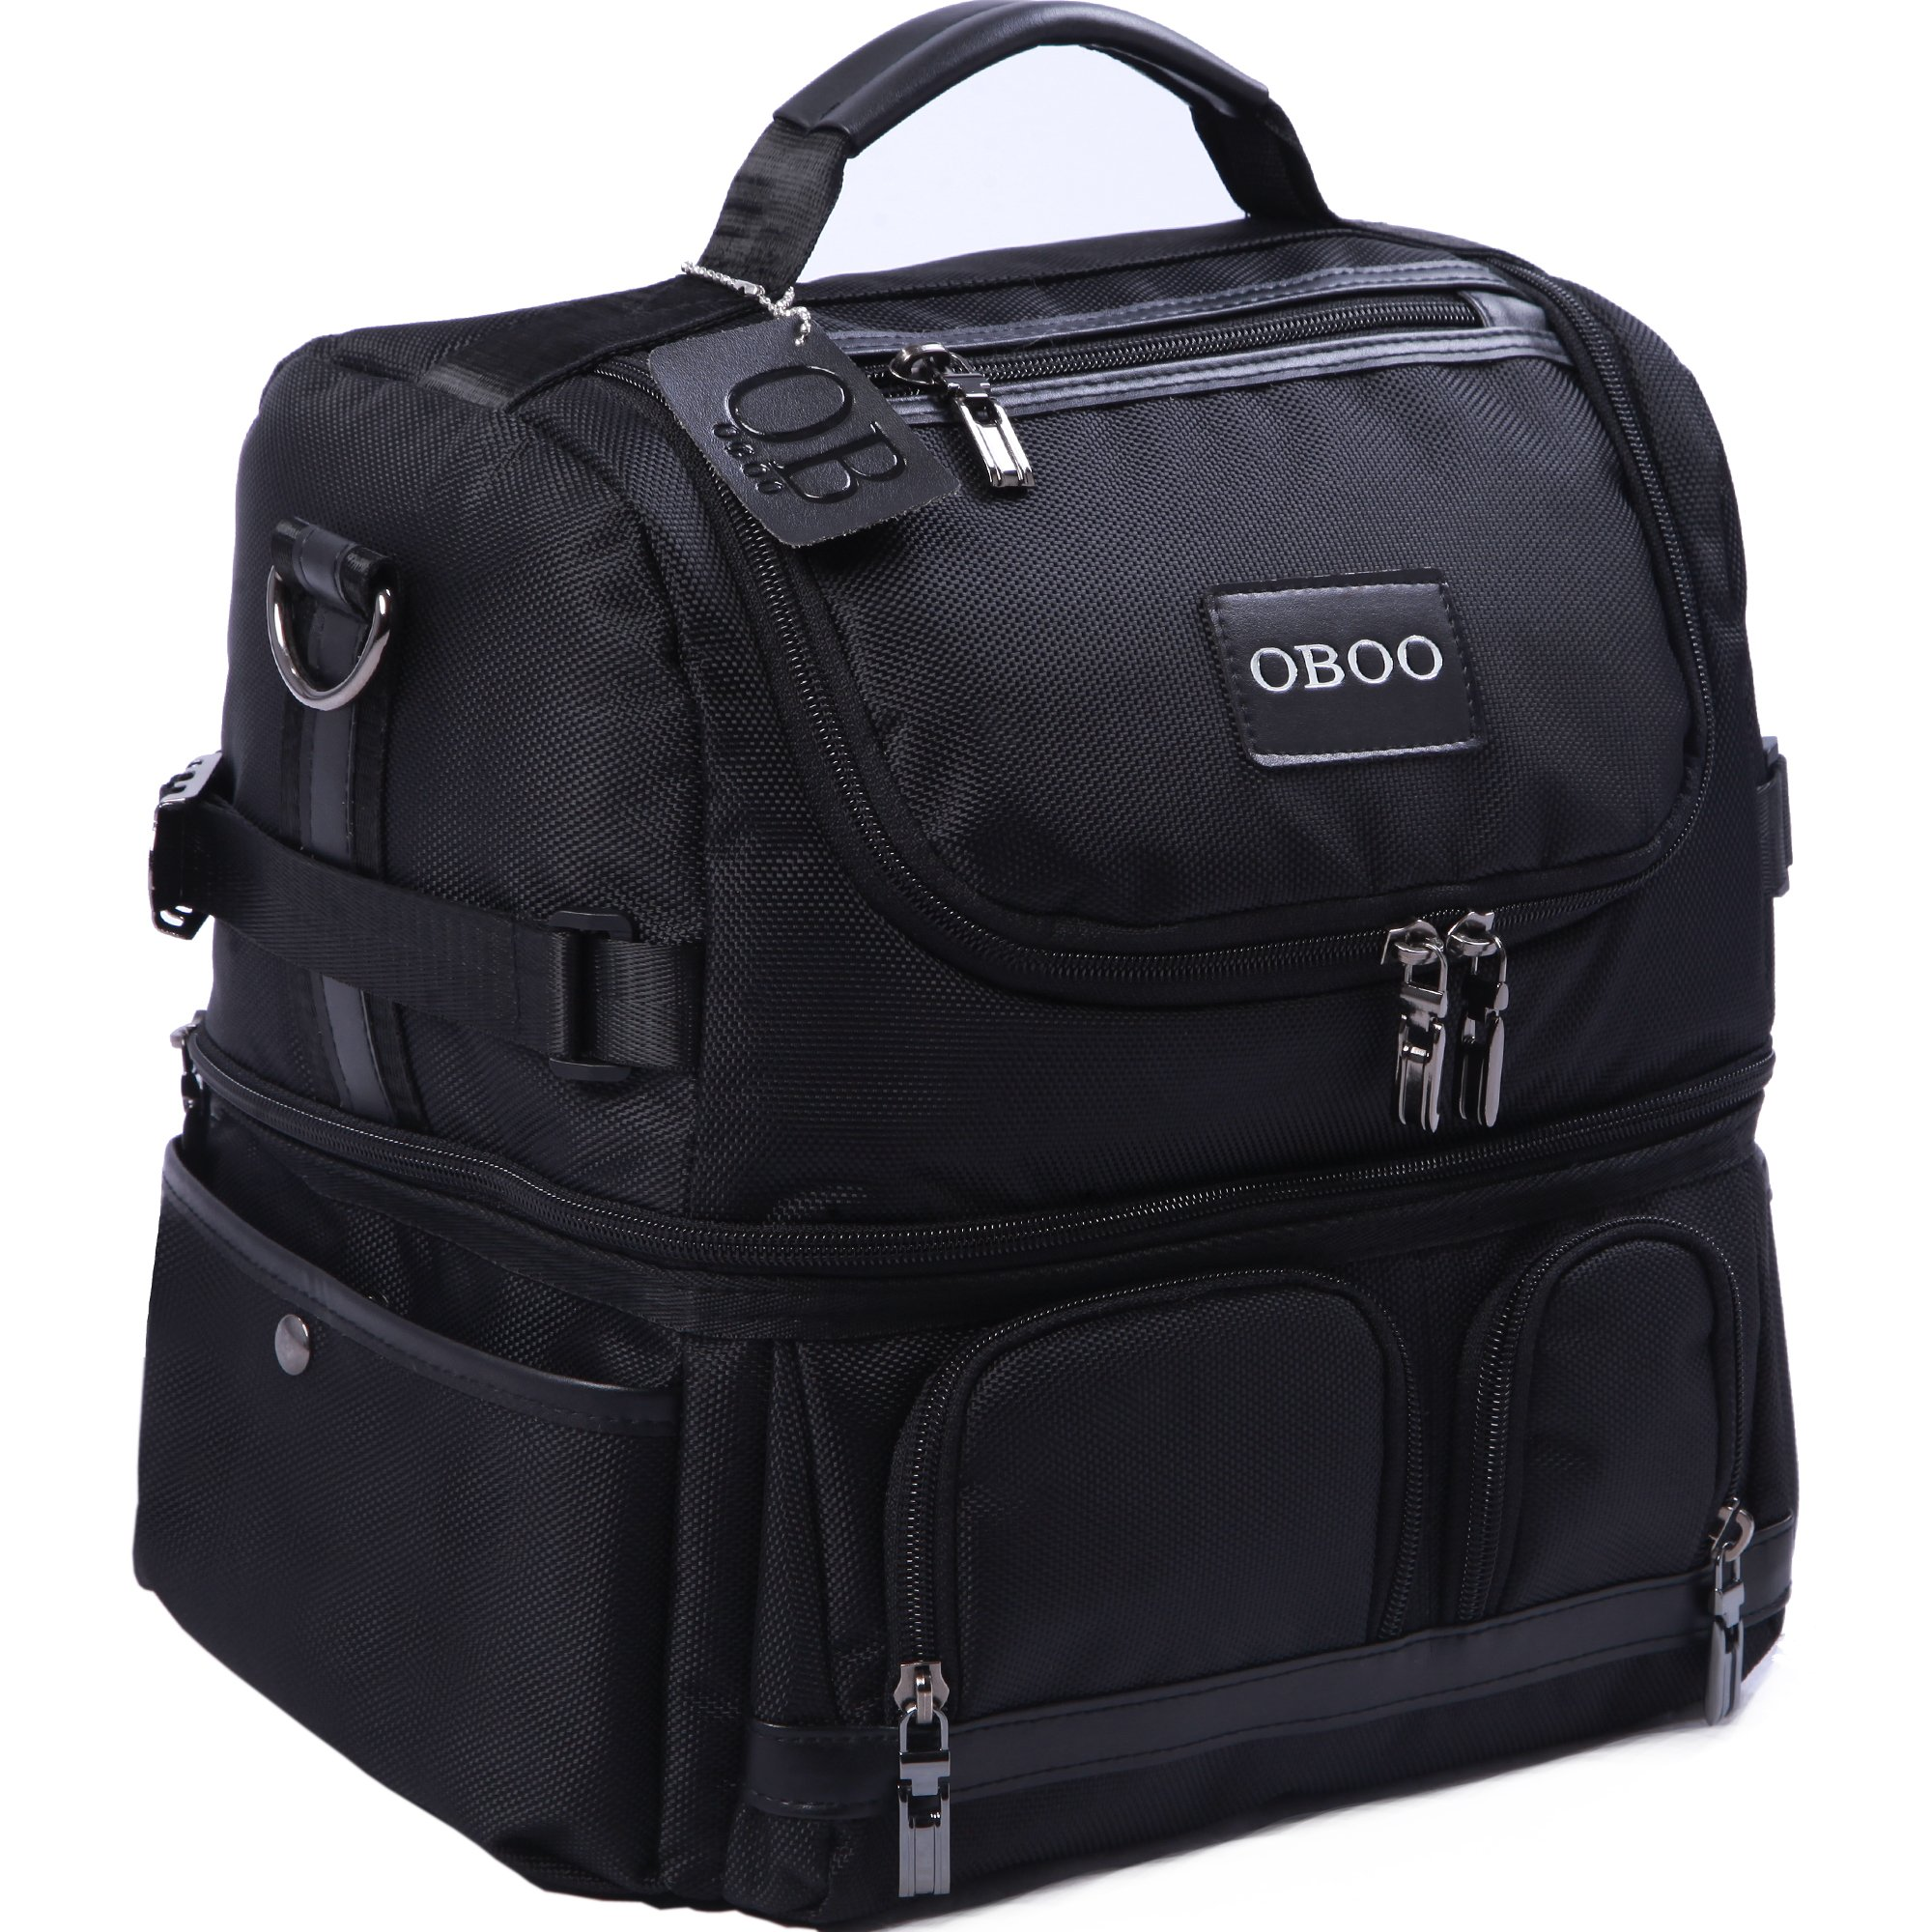 OBOO Adult Lunch Box Insulated Lunch Bag,Double Reusable Waterproof Large Cooler Tote with Shoulder Strap for Men&Women(black, 12can) by DREAM BEAR